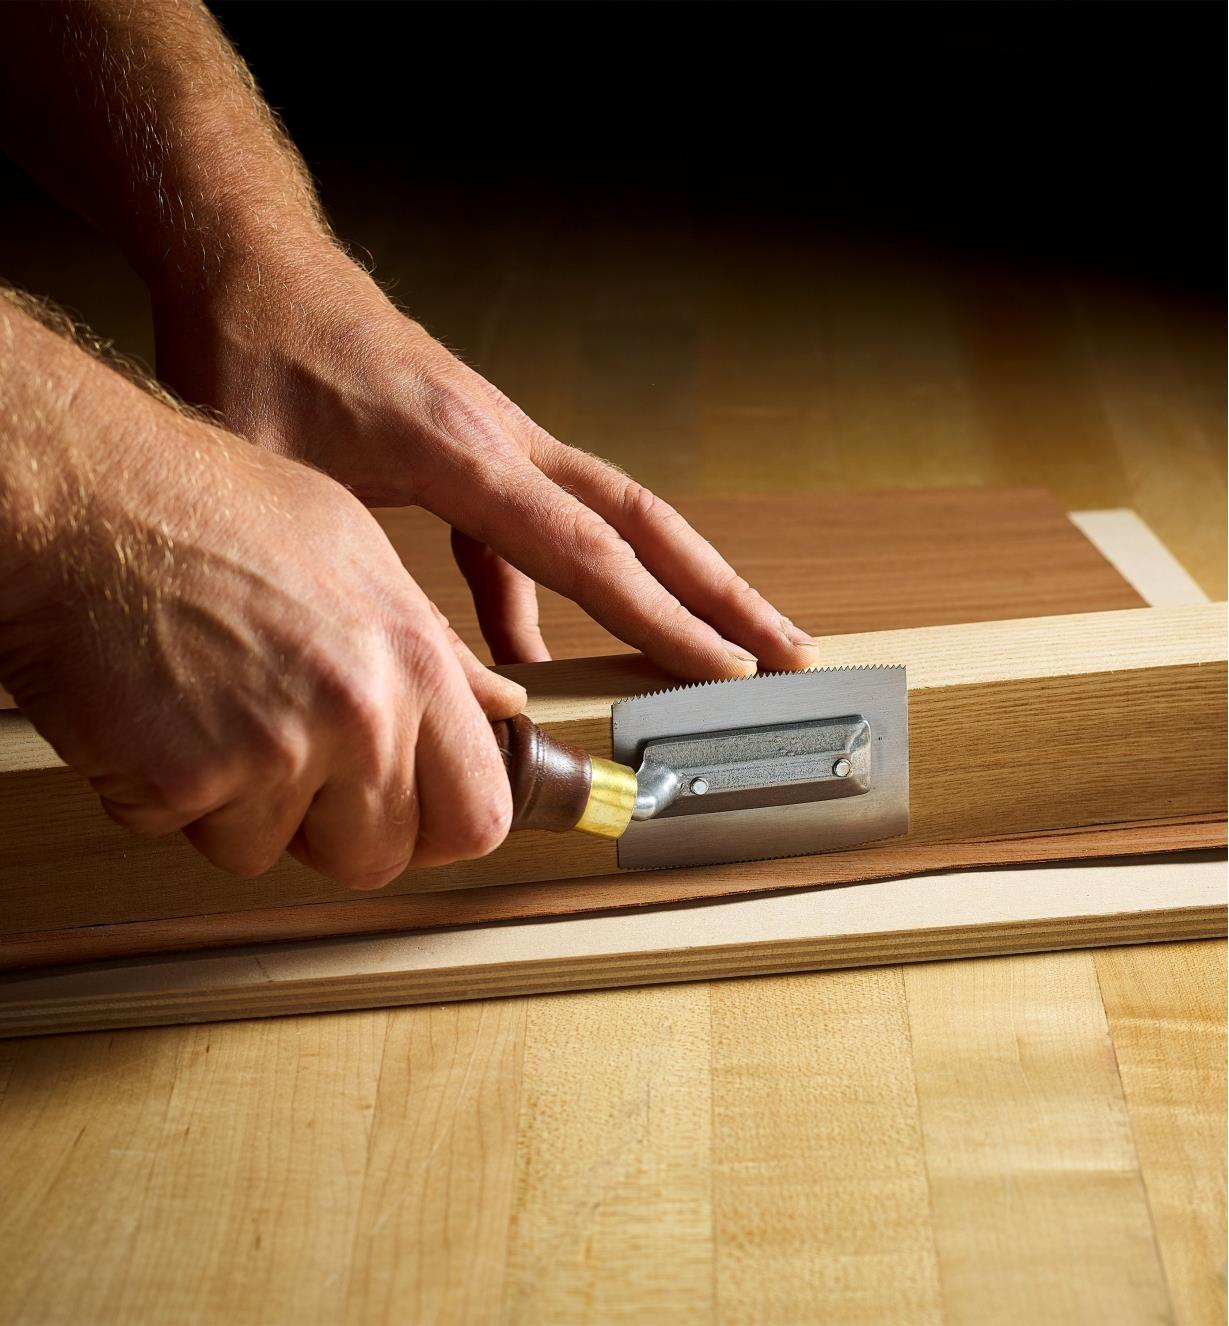 A woodworker uses a Pax veneer saw to make a precise cut in a sheet of wooden veneer